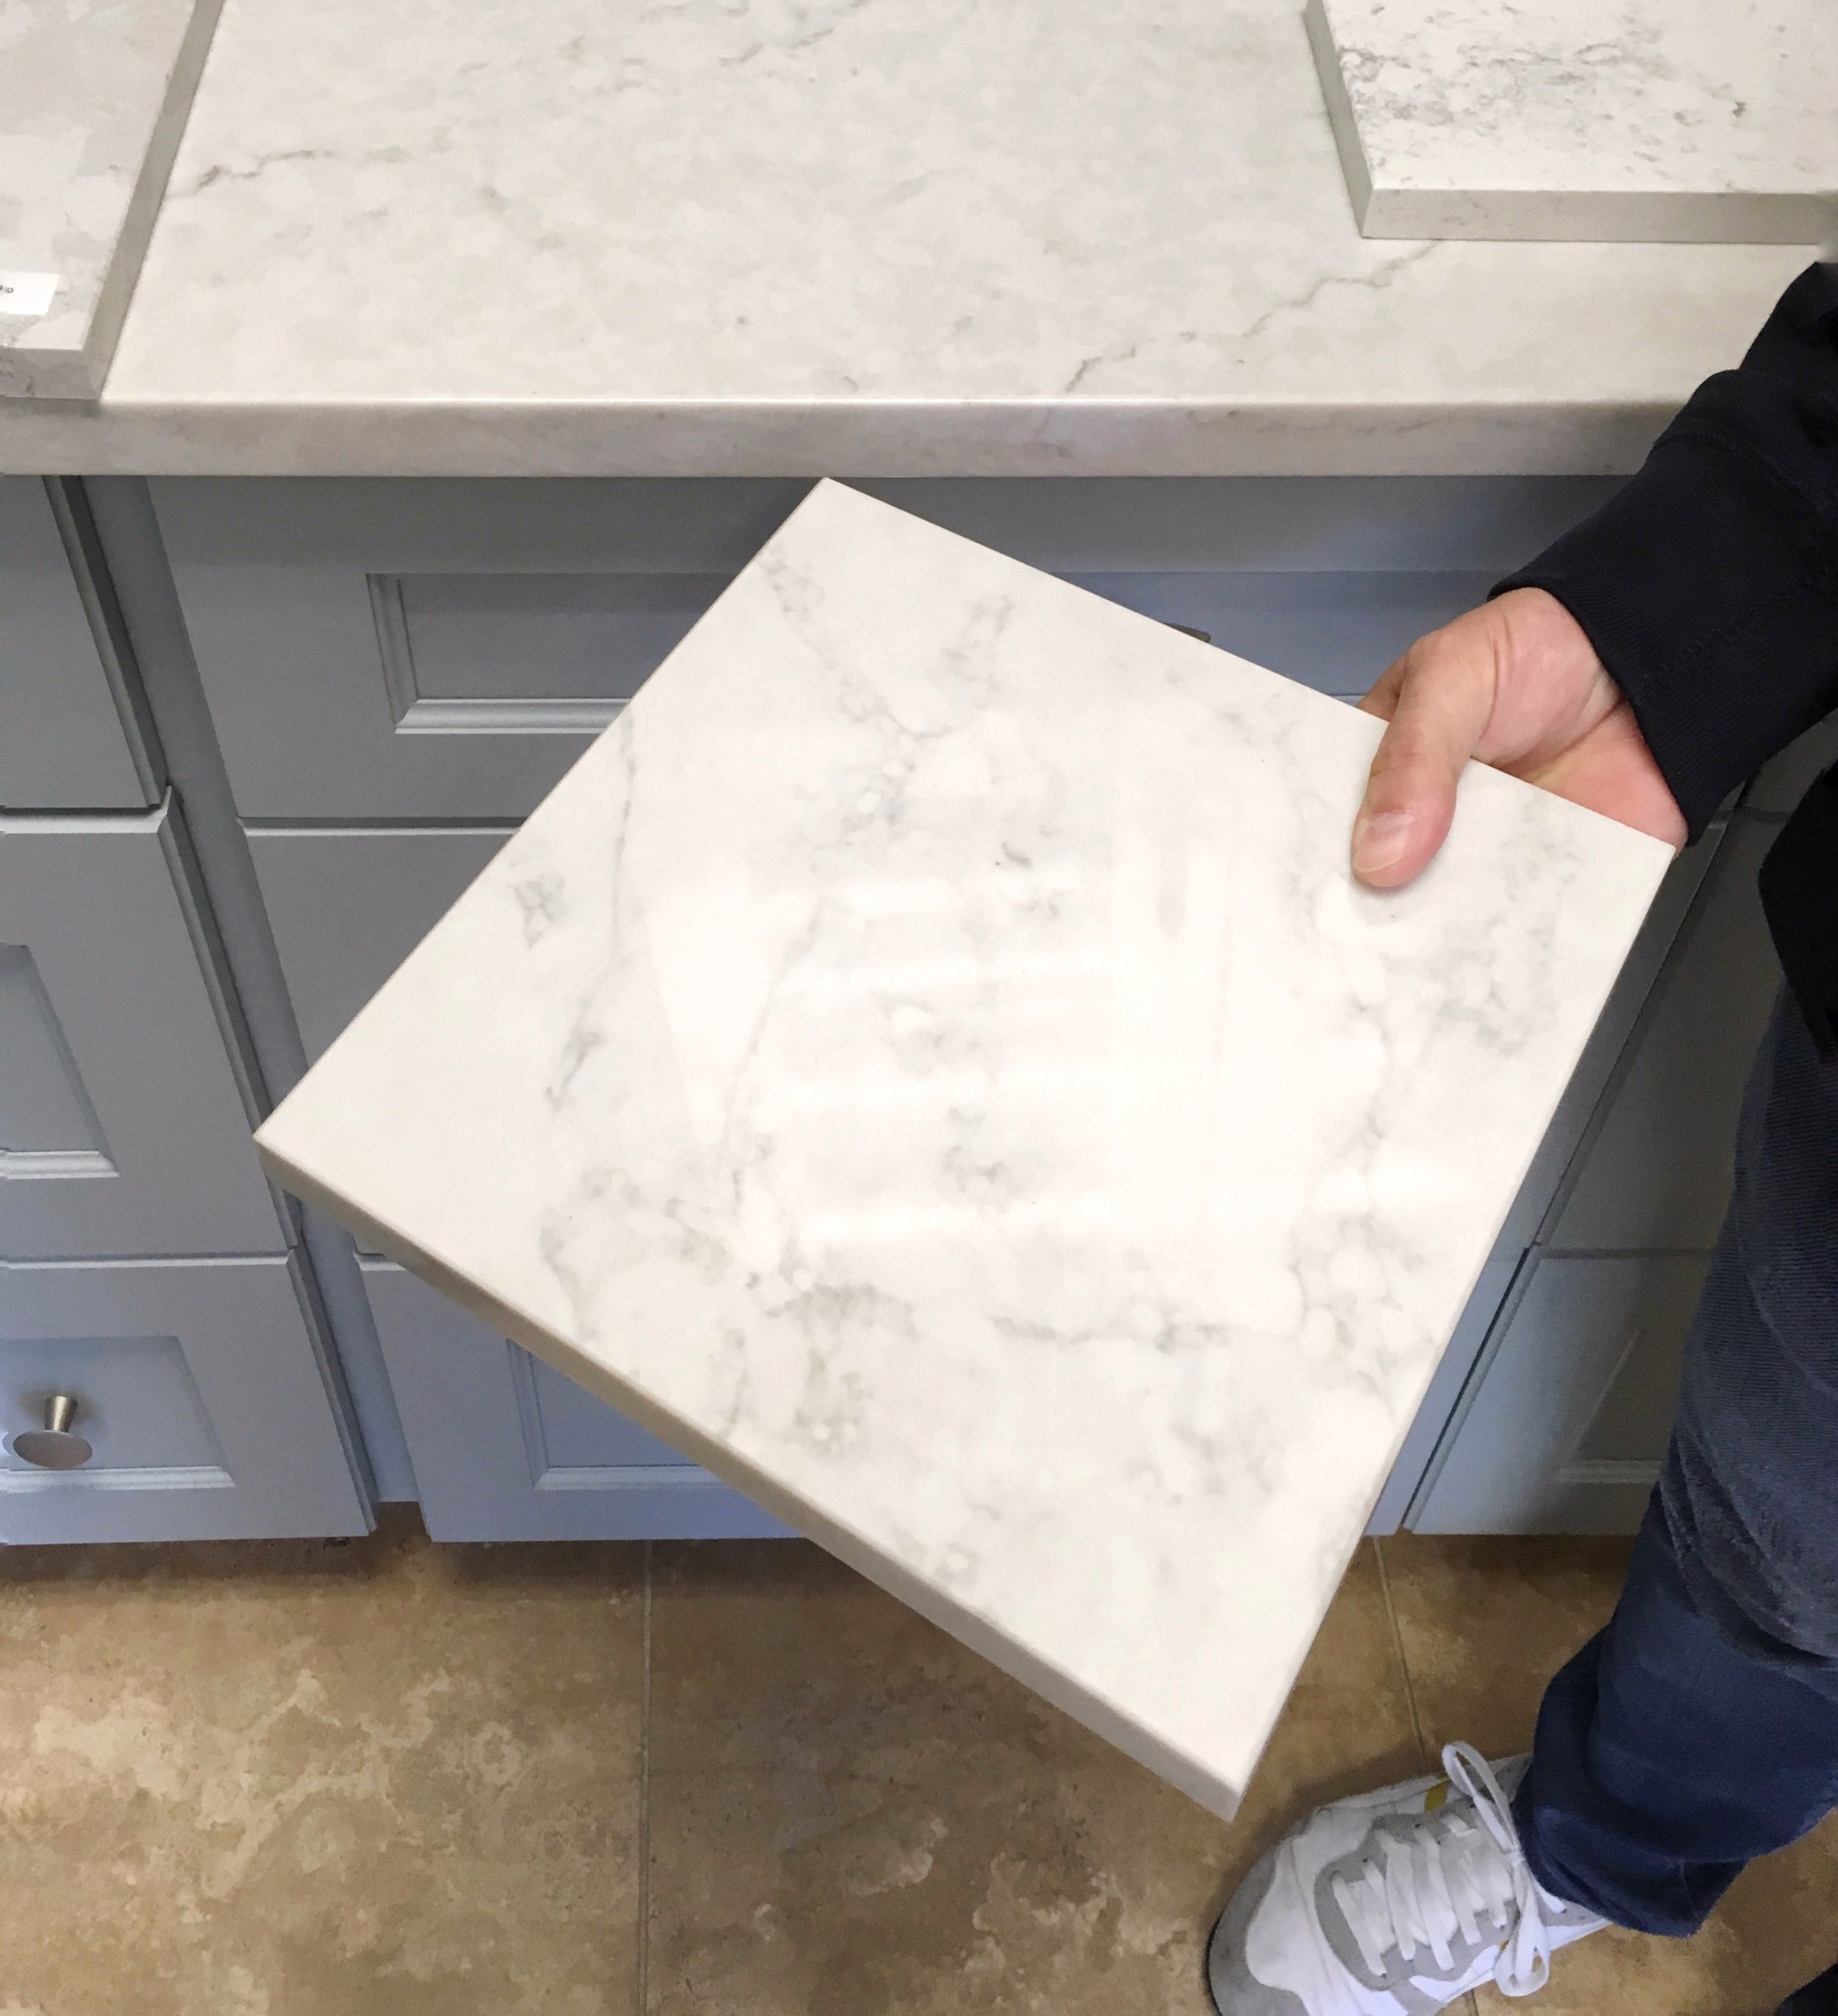 Owen showing off some quartz samples at a kitchen supply showroom.